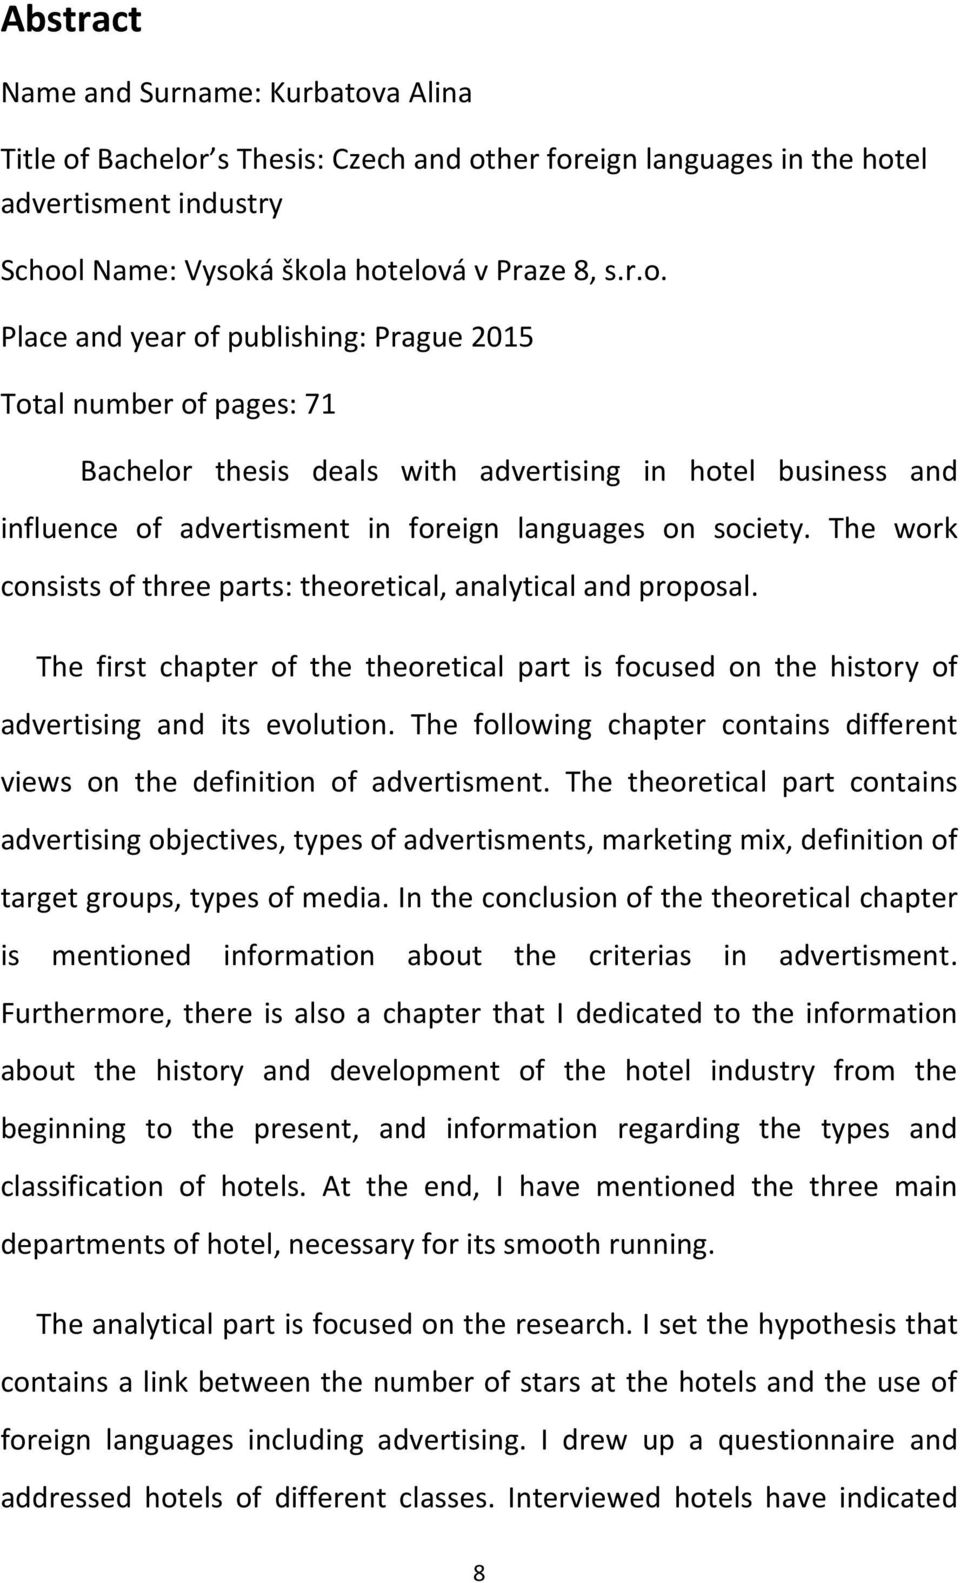 Bachelor s Thesis: Czech and other foreign languages in the hotel advertisment industry School Name: Vysoká škola hotelová v Praze 8, s.r.o. Place and year of publishing: Prague 2015 Total number of pages: 71 Bachelor thesis deals with advertising in hotel business and influence of advertisment in foreign languages on society.